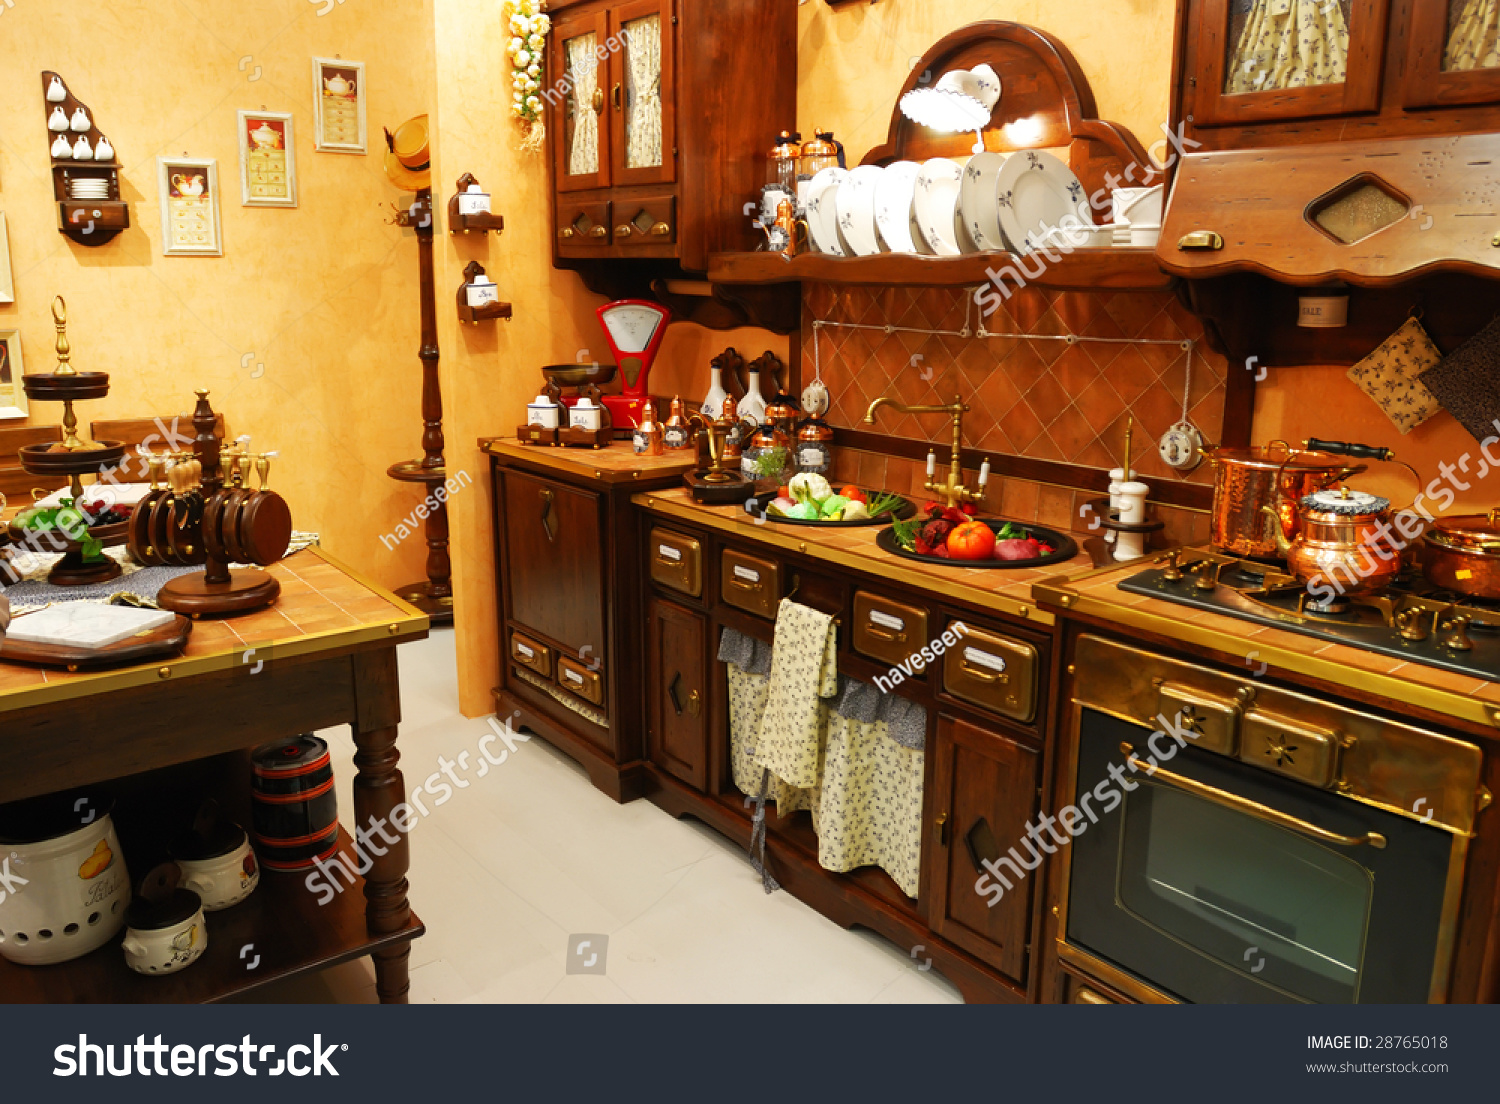 High Quality Classic Old Fashioned Kitchen Interior